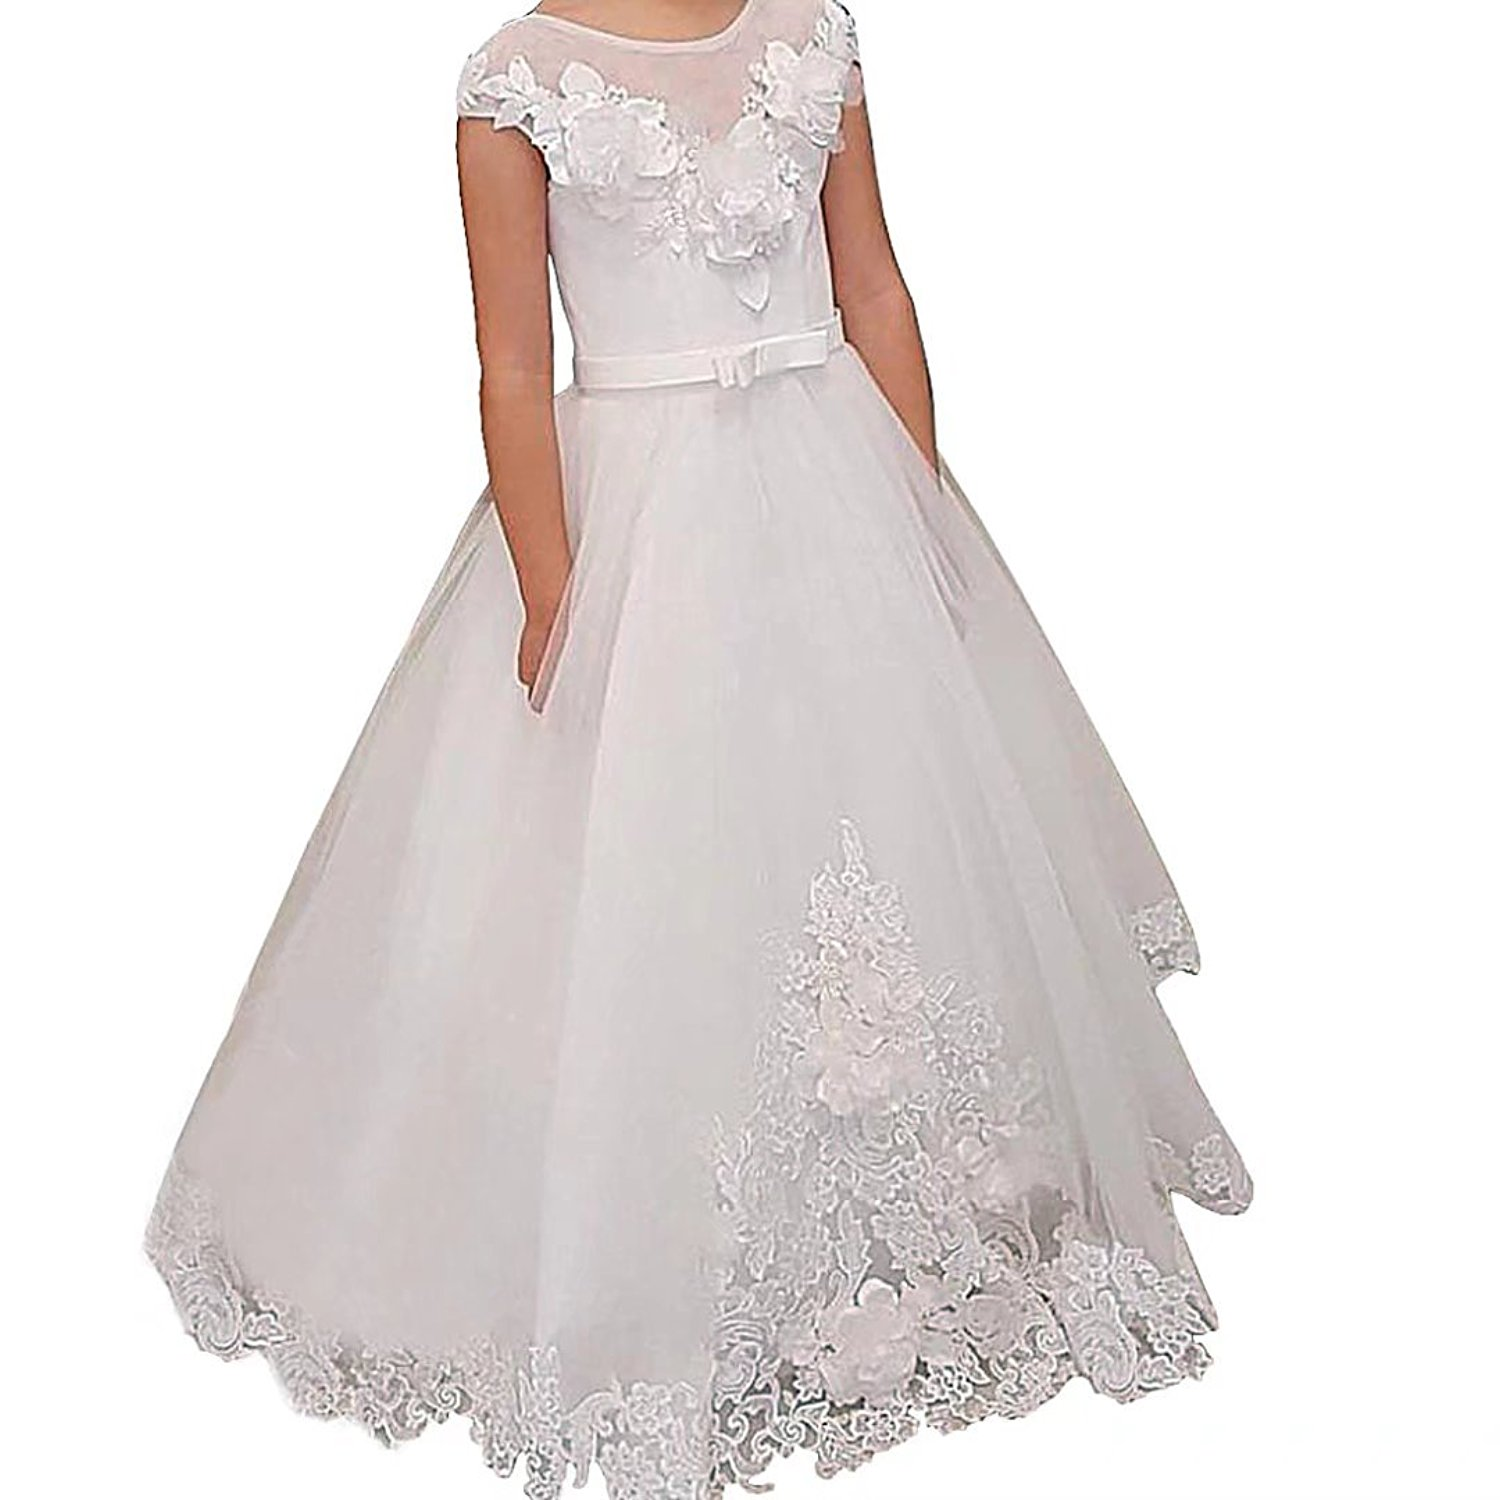 4dab0158005 Get Quotations · Boloni Dress Flower Dresses for Girls Tulle Skirt Holy  First Communion Dress Plus Size Dresses for